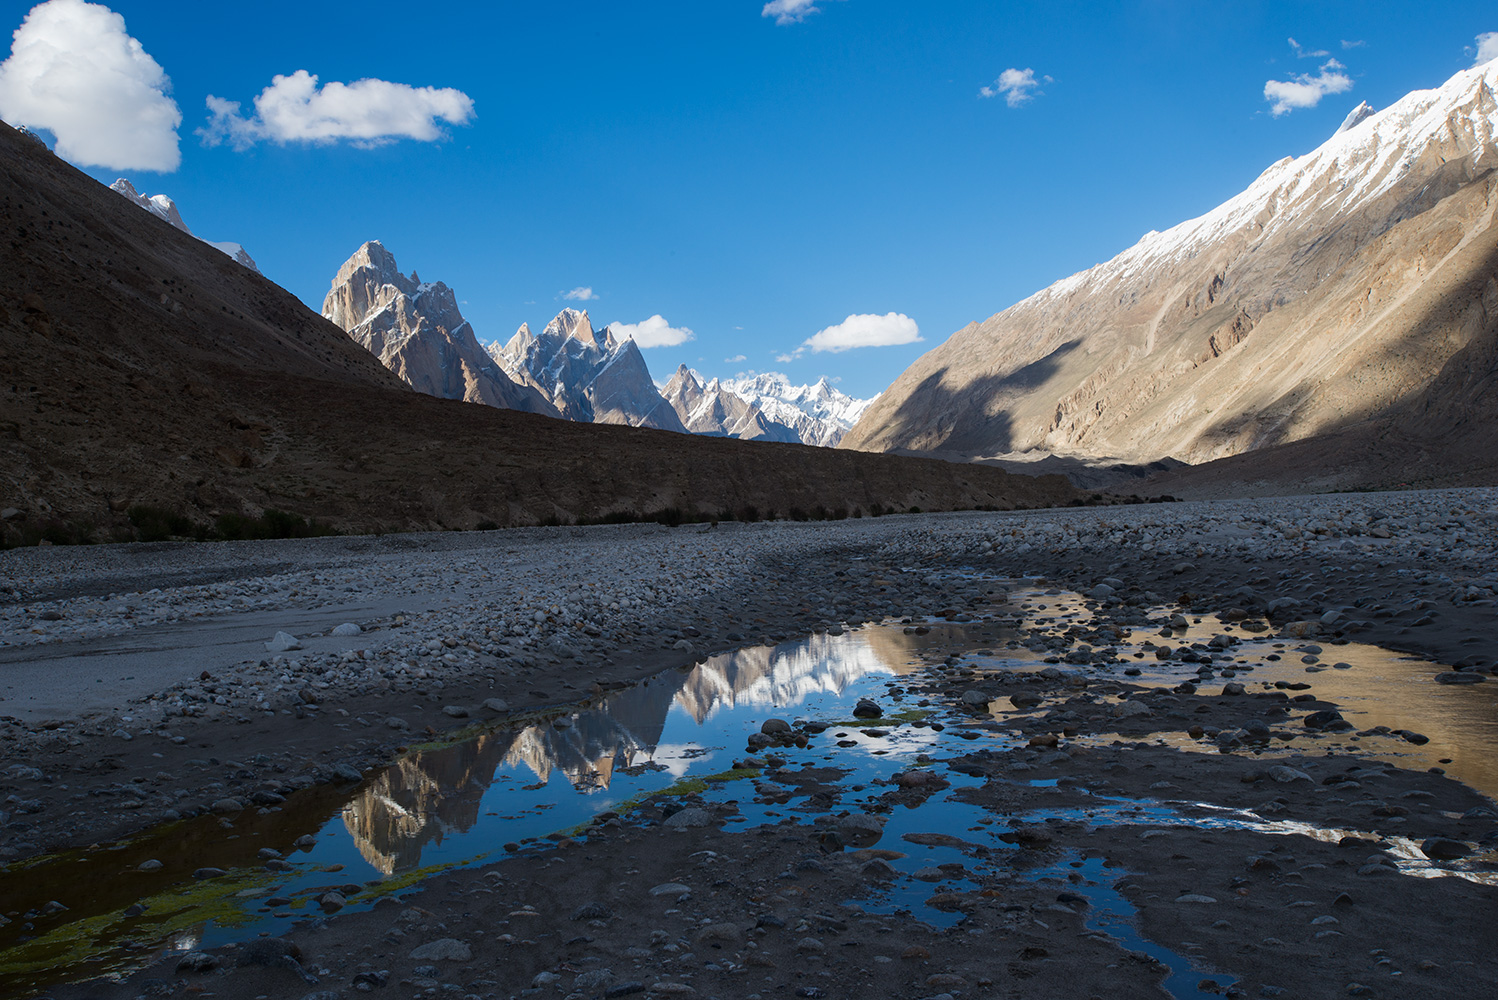 The view up valley from Paiju, reflected in pools of water on the valley floor.